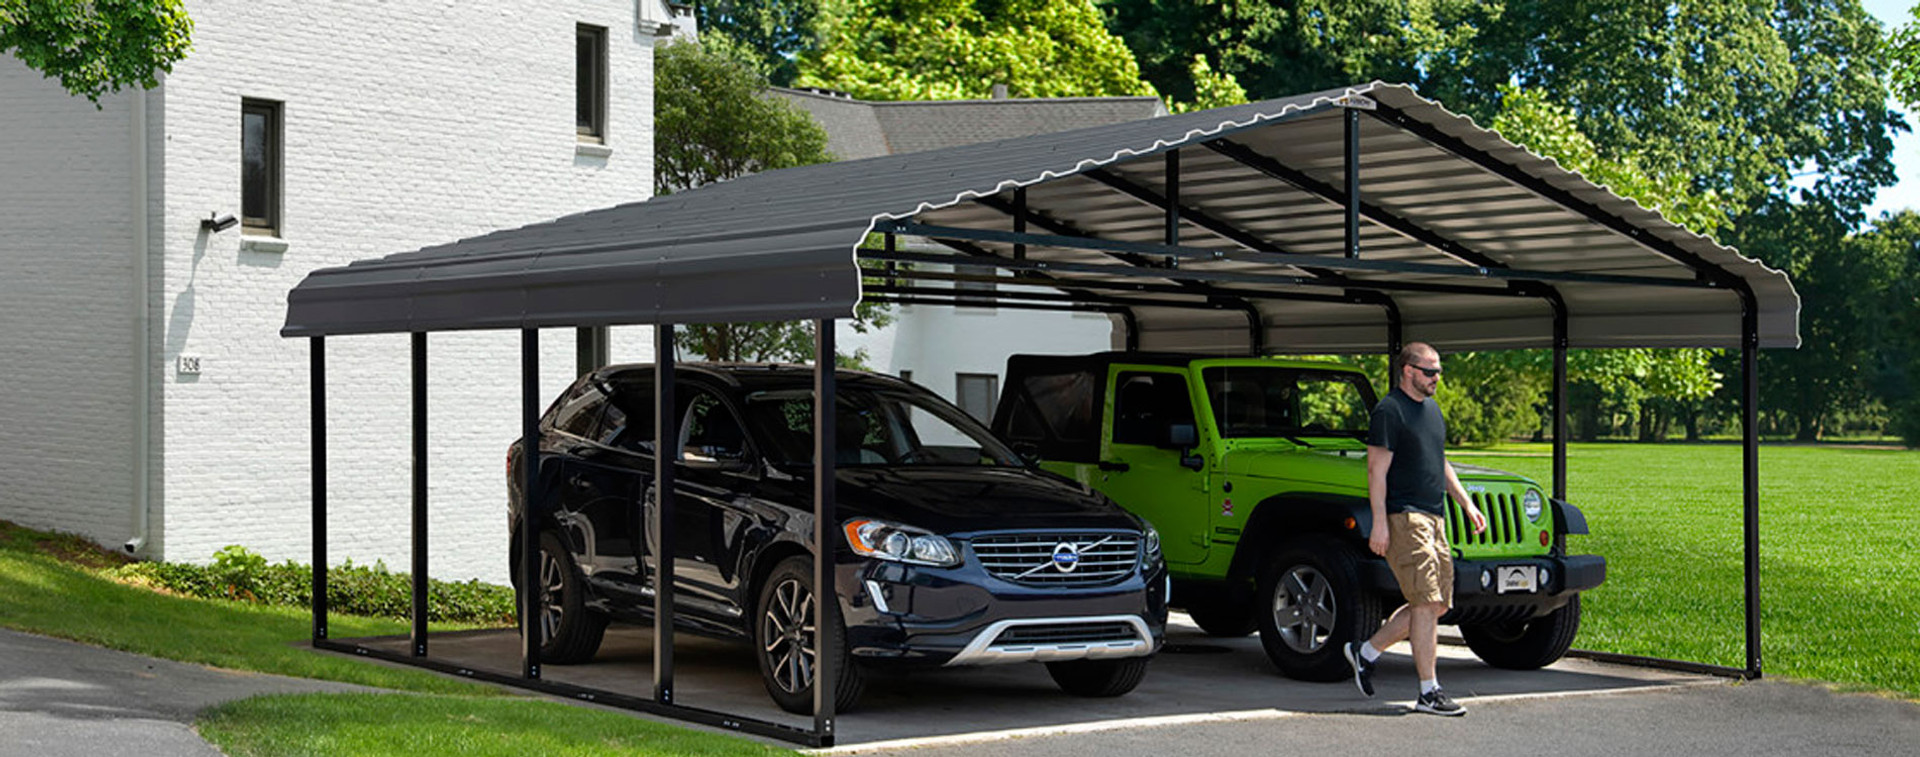 reputable site 3038d 720f6 Shelters of New England, portable garages, carports and ...